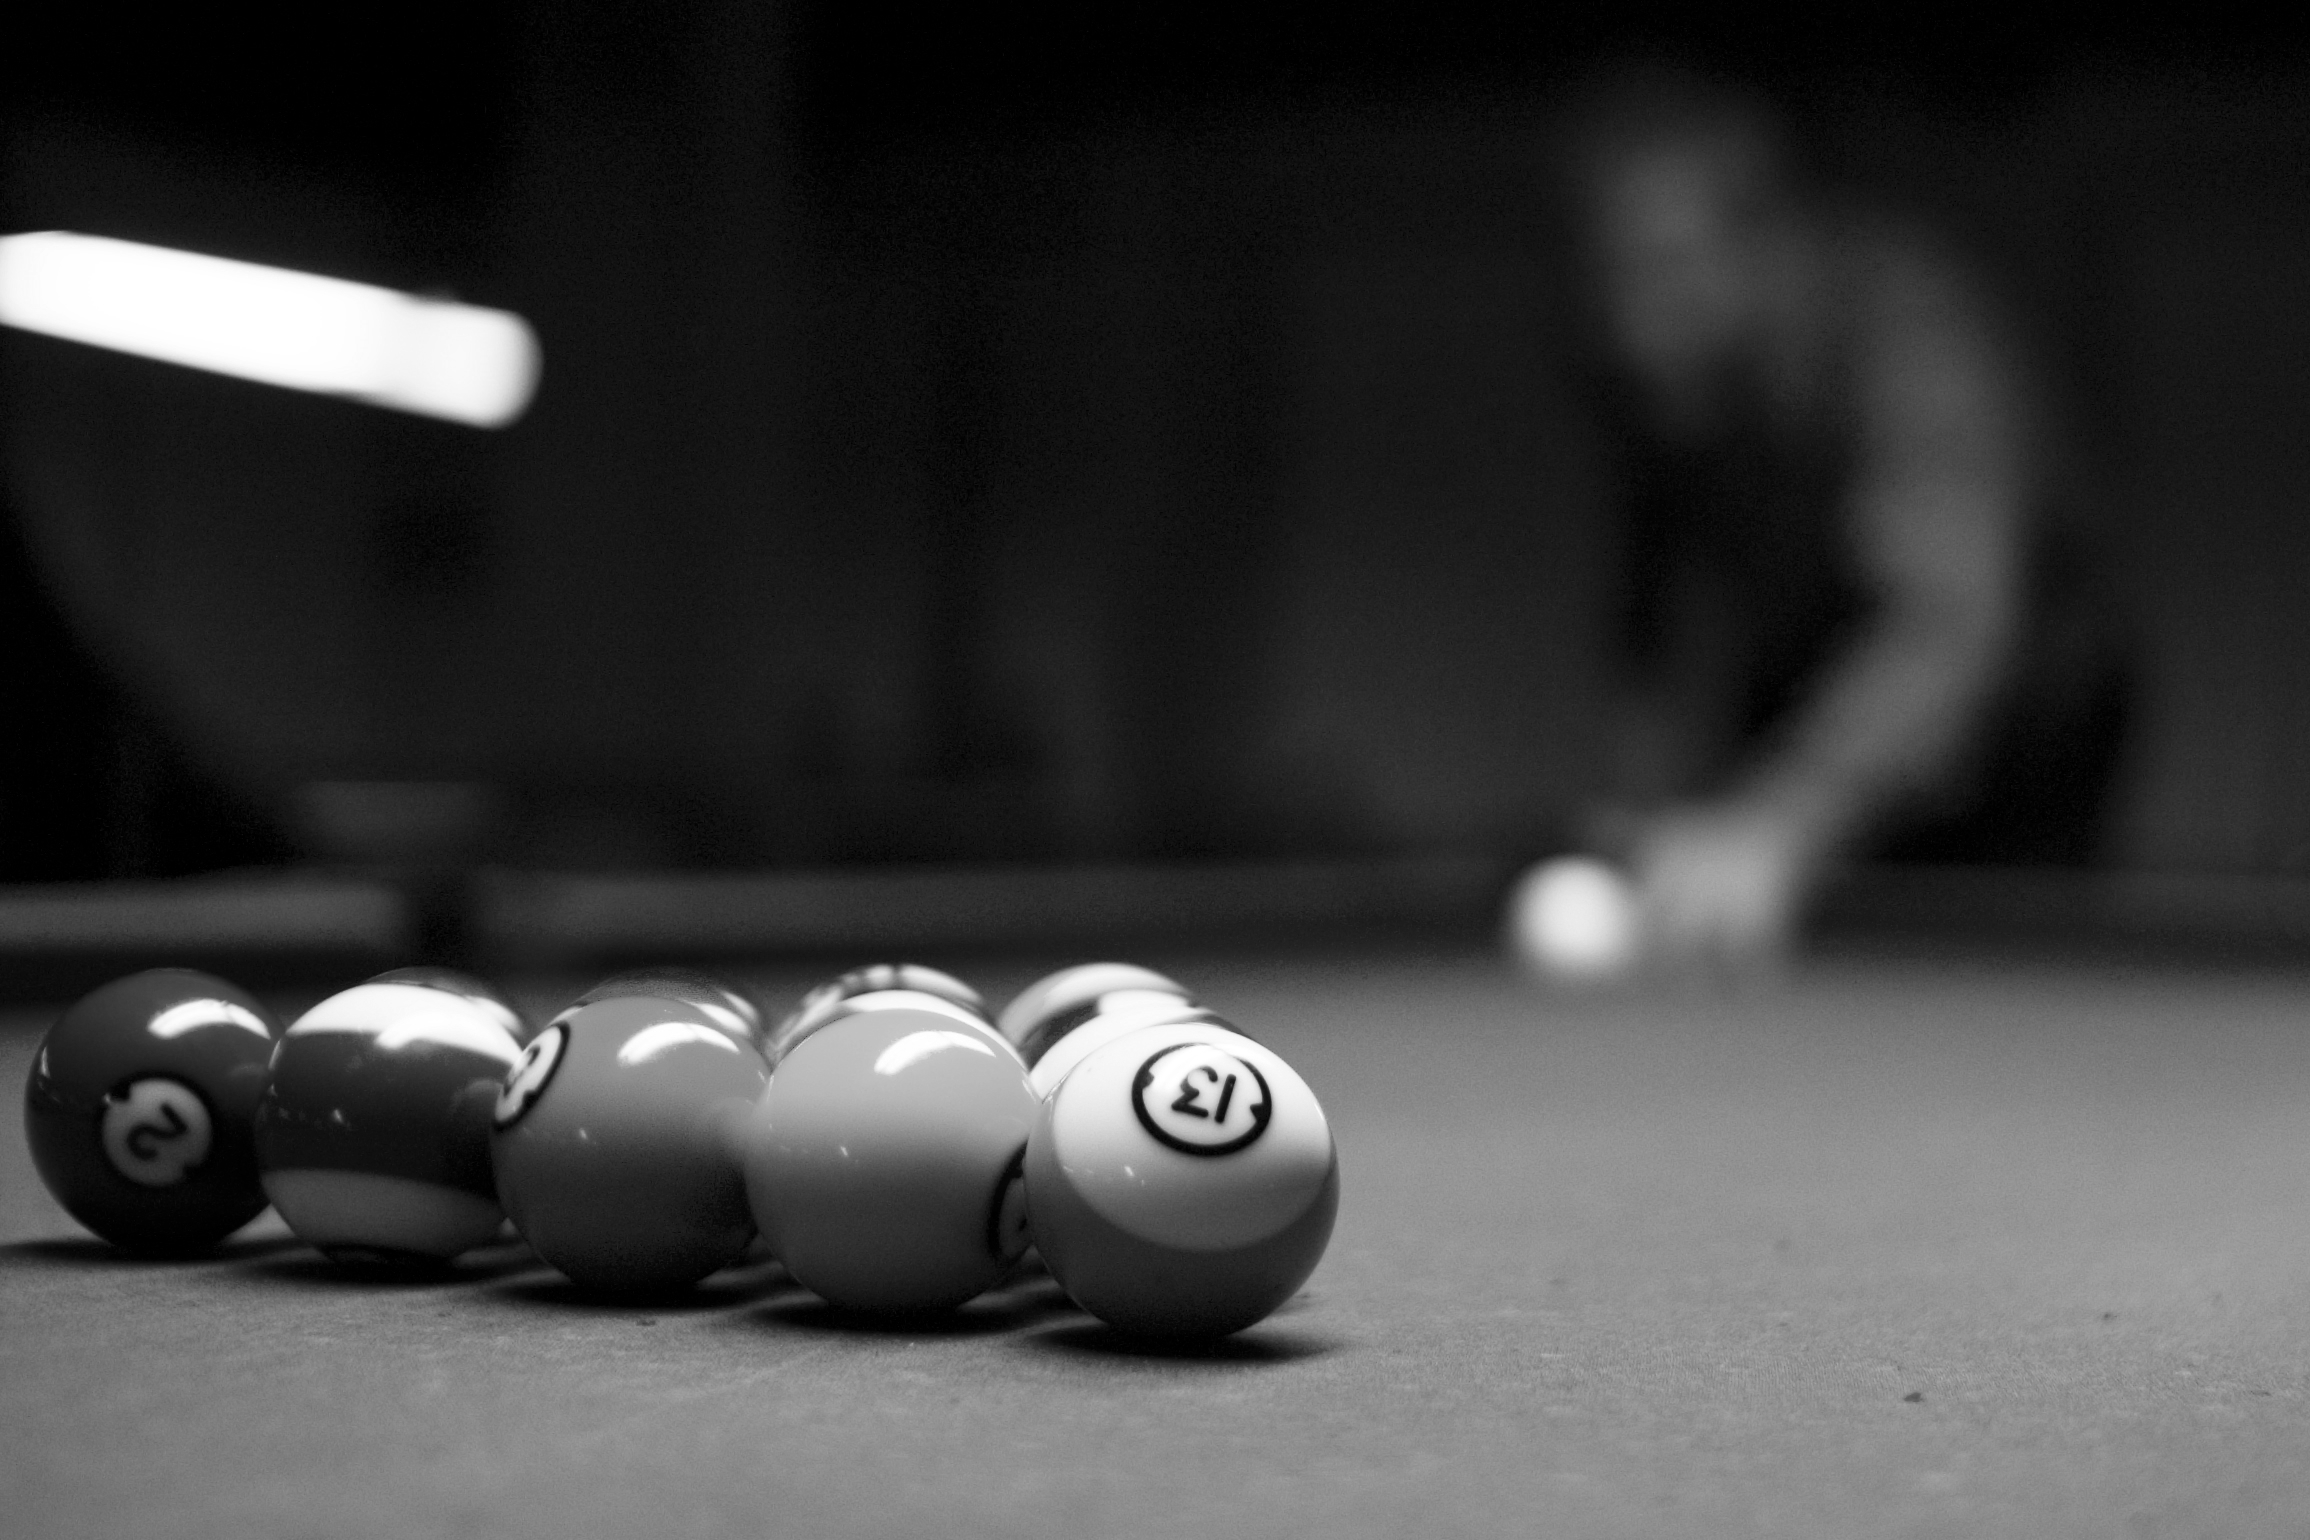 8ball_break